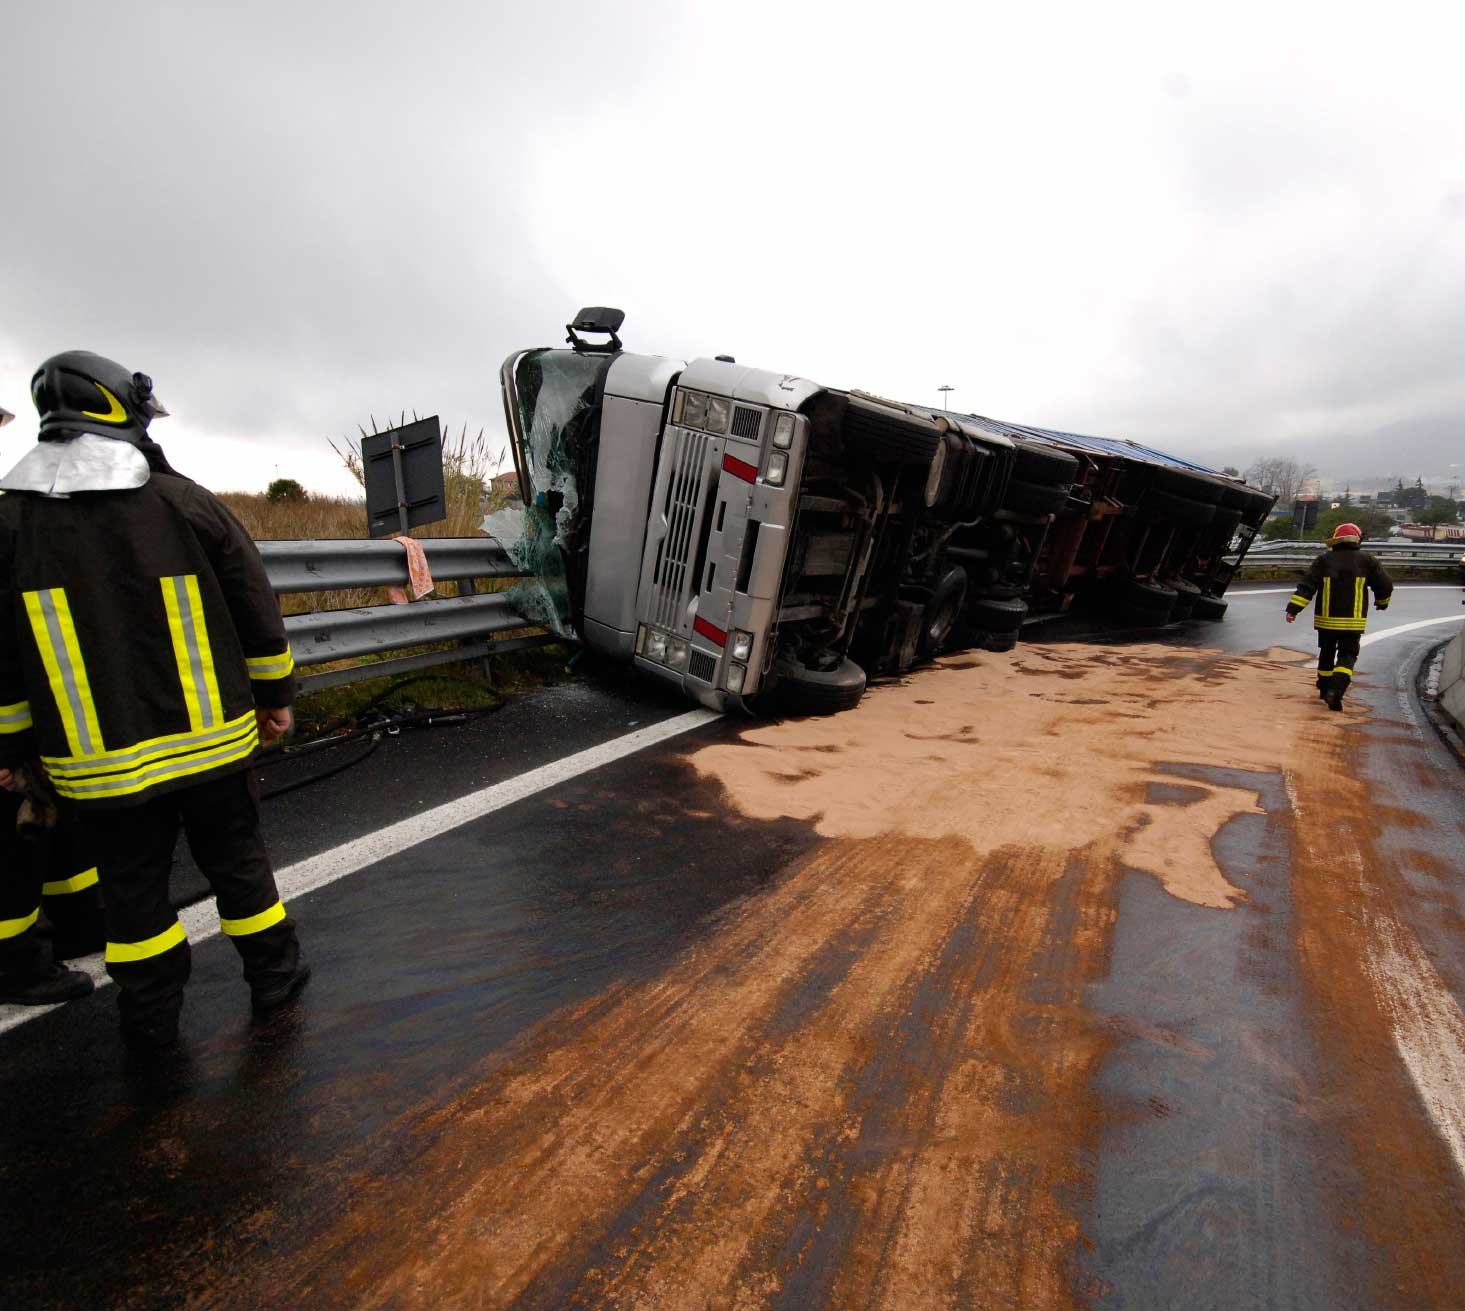 Bus wreck on side crushed in guardrail compressed